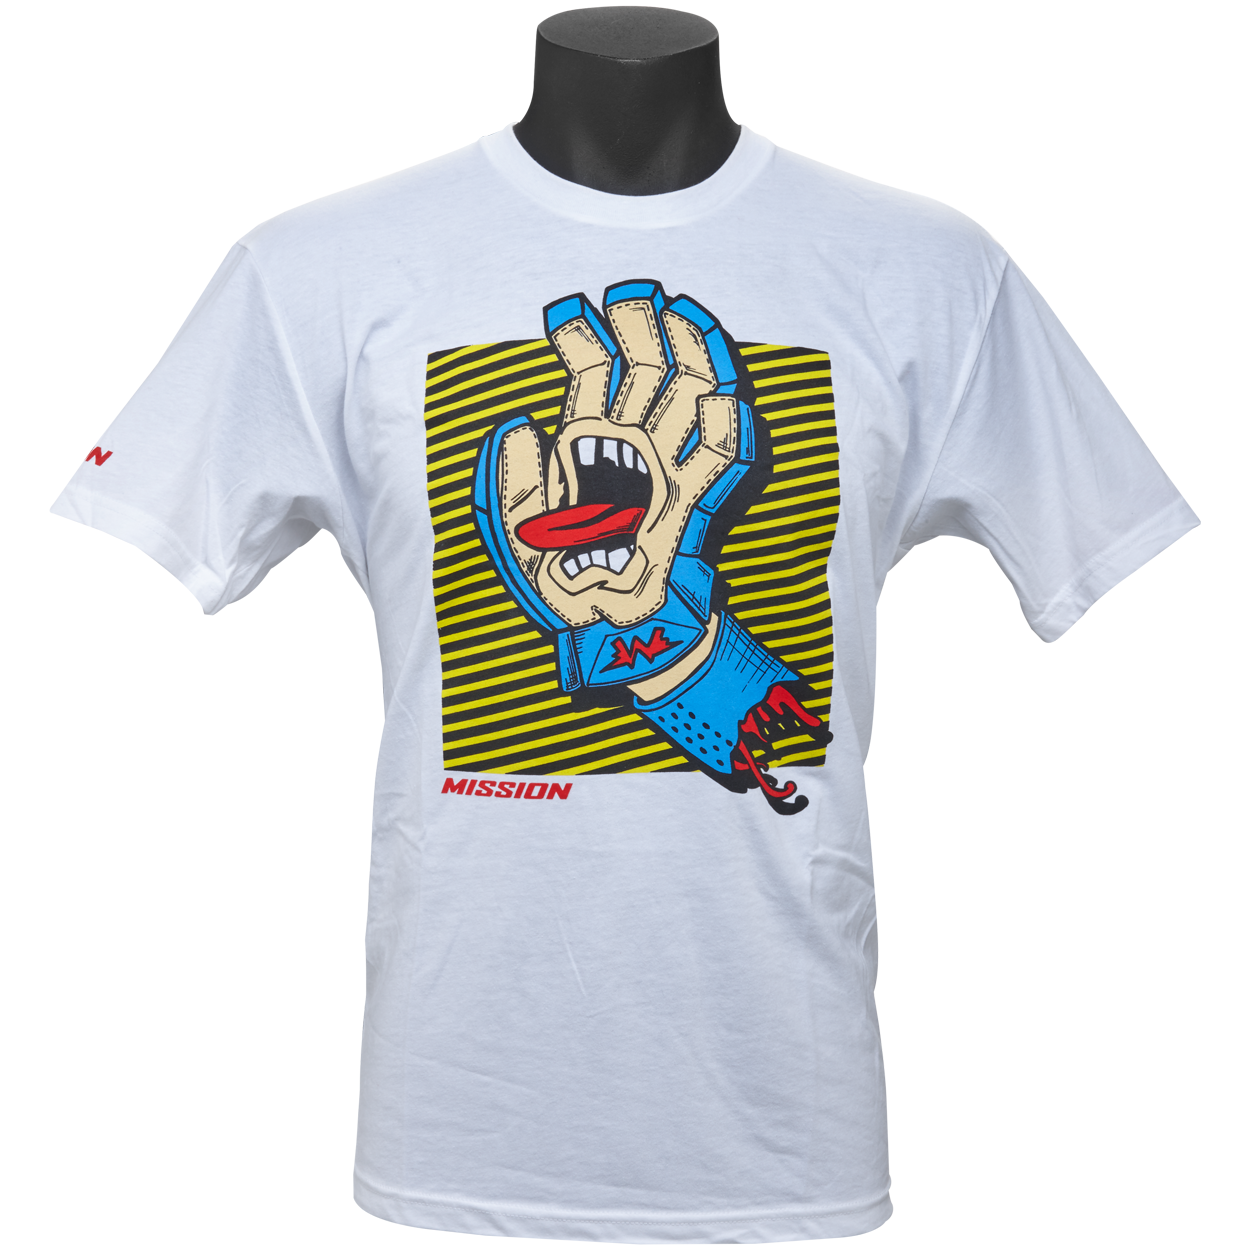 MISSION Screaming Glove T-Shirt Senior,,Размер M